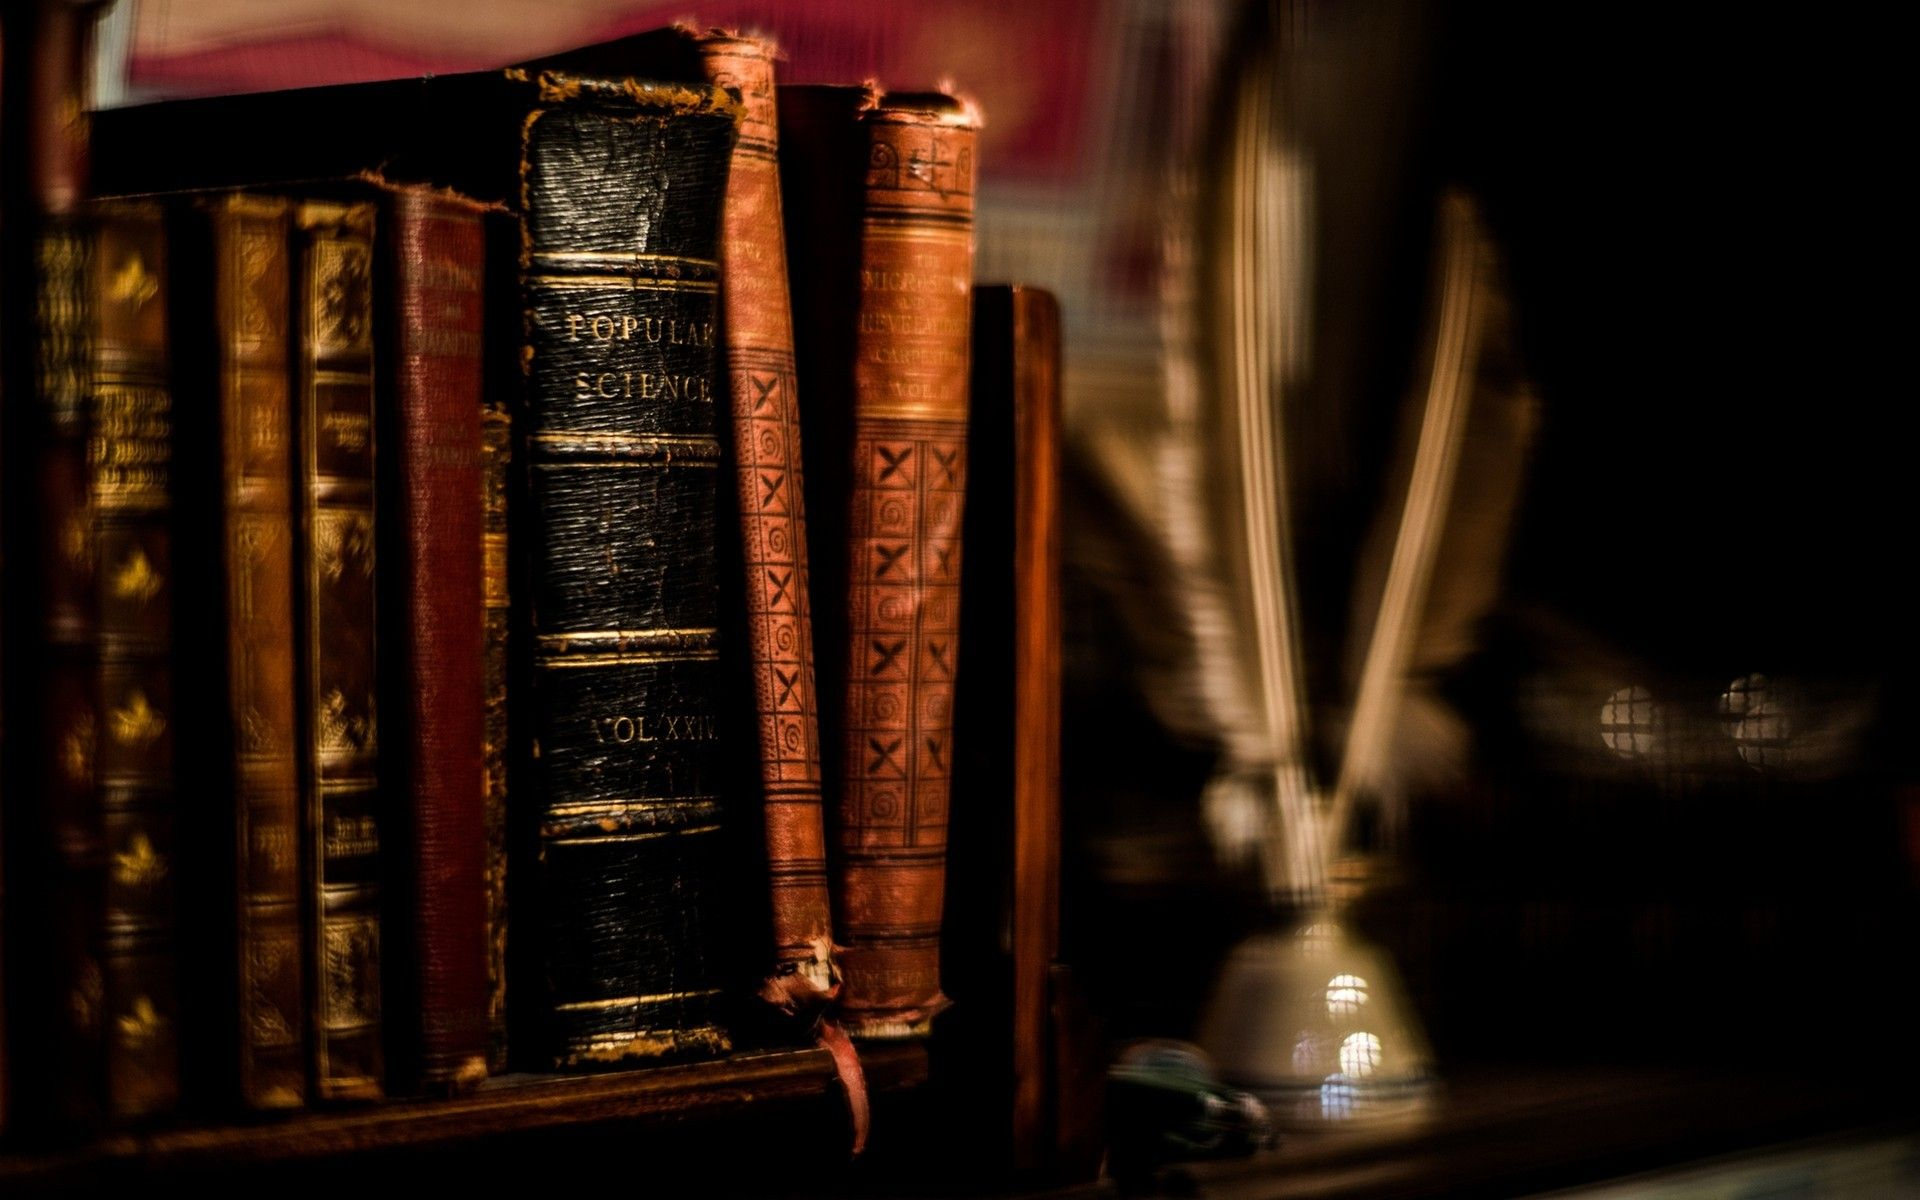 1920x1200 Feathers books ancient blurred background shelves wallpaper ...